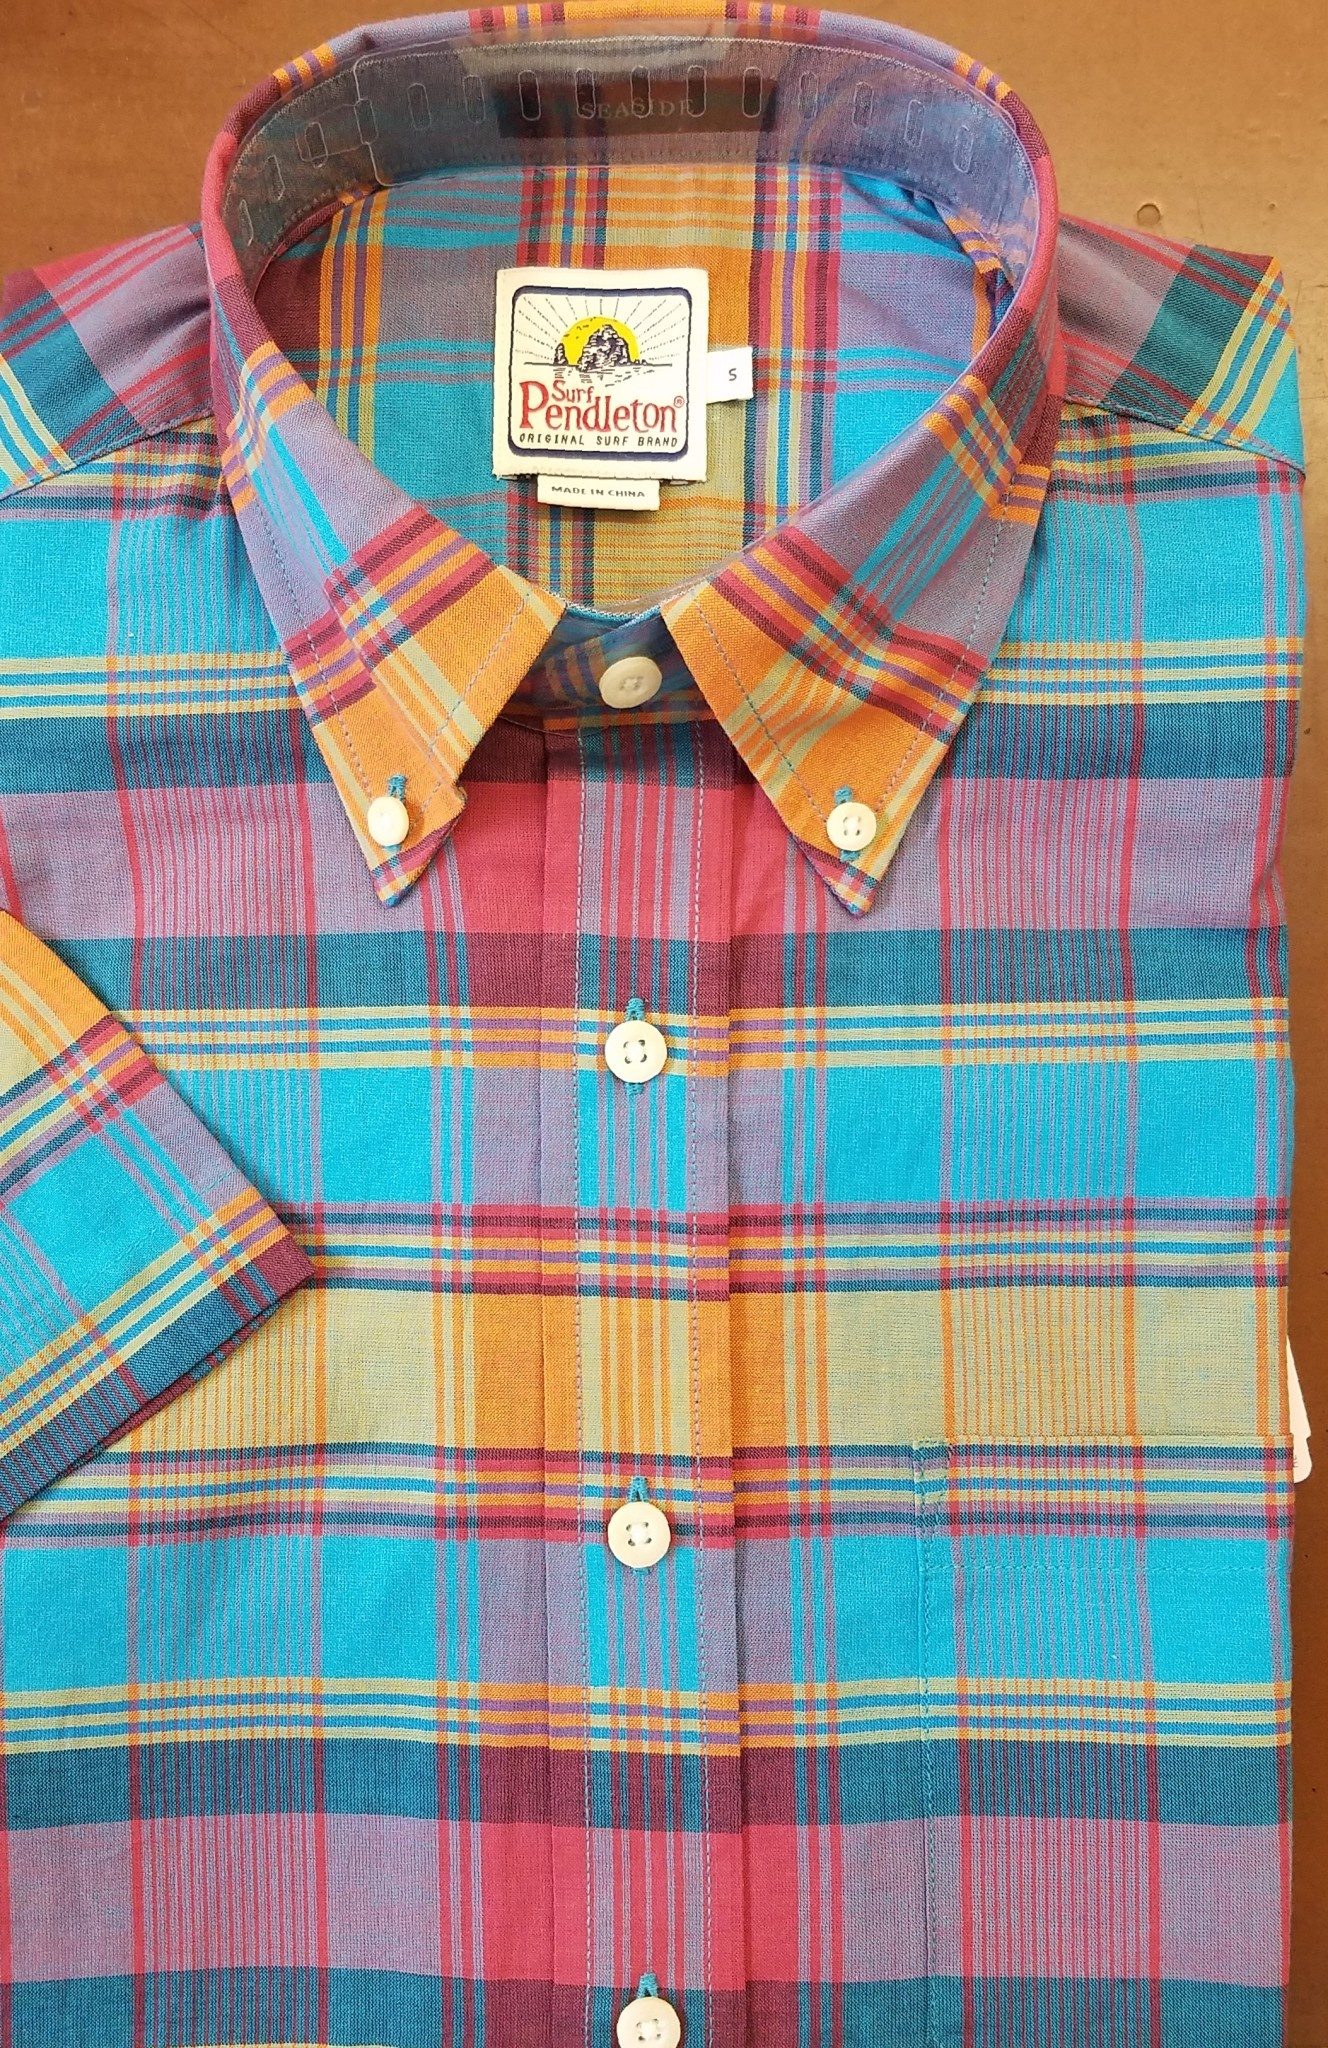 Pendleton Seaside Shirt